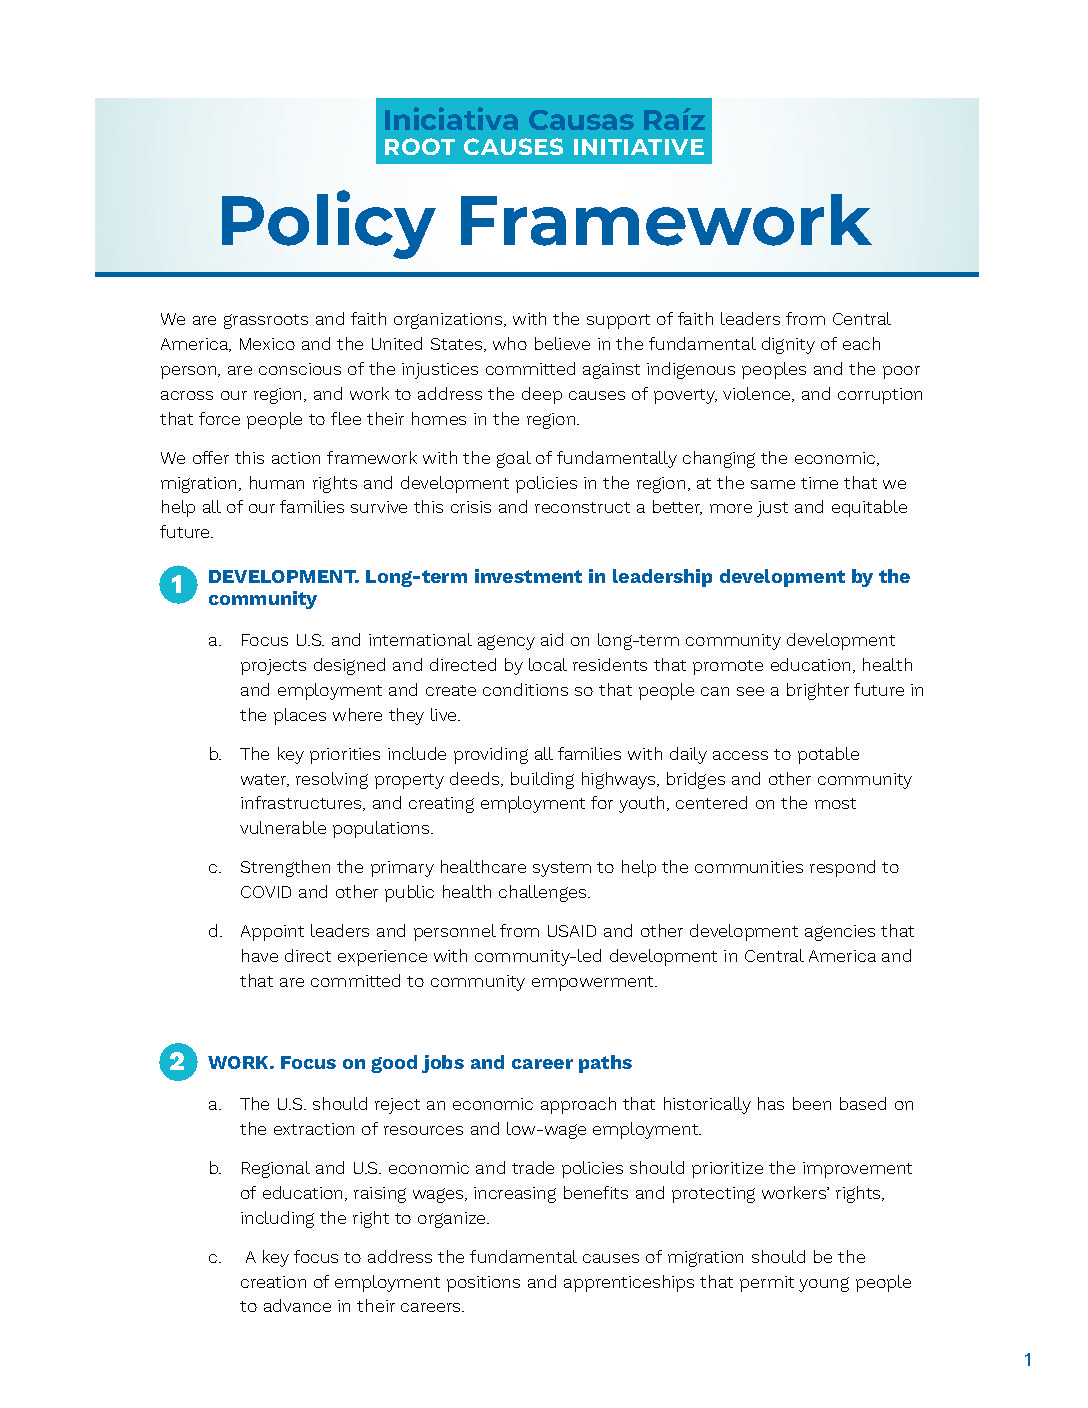 Root Causes Initiative Policy Framework